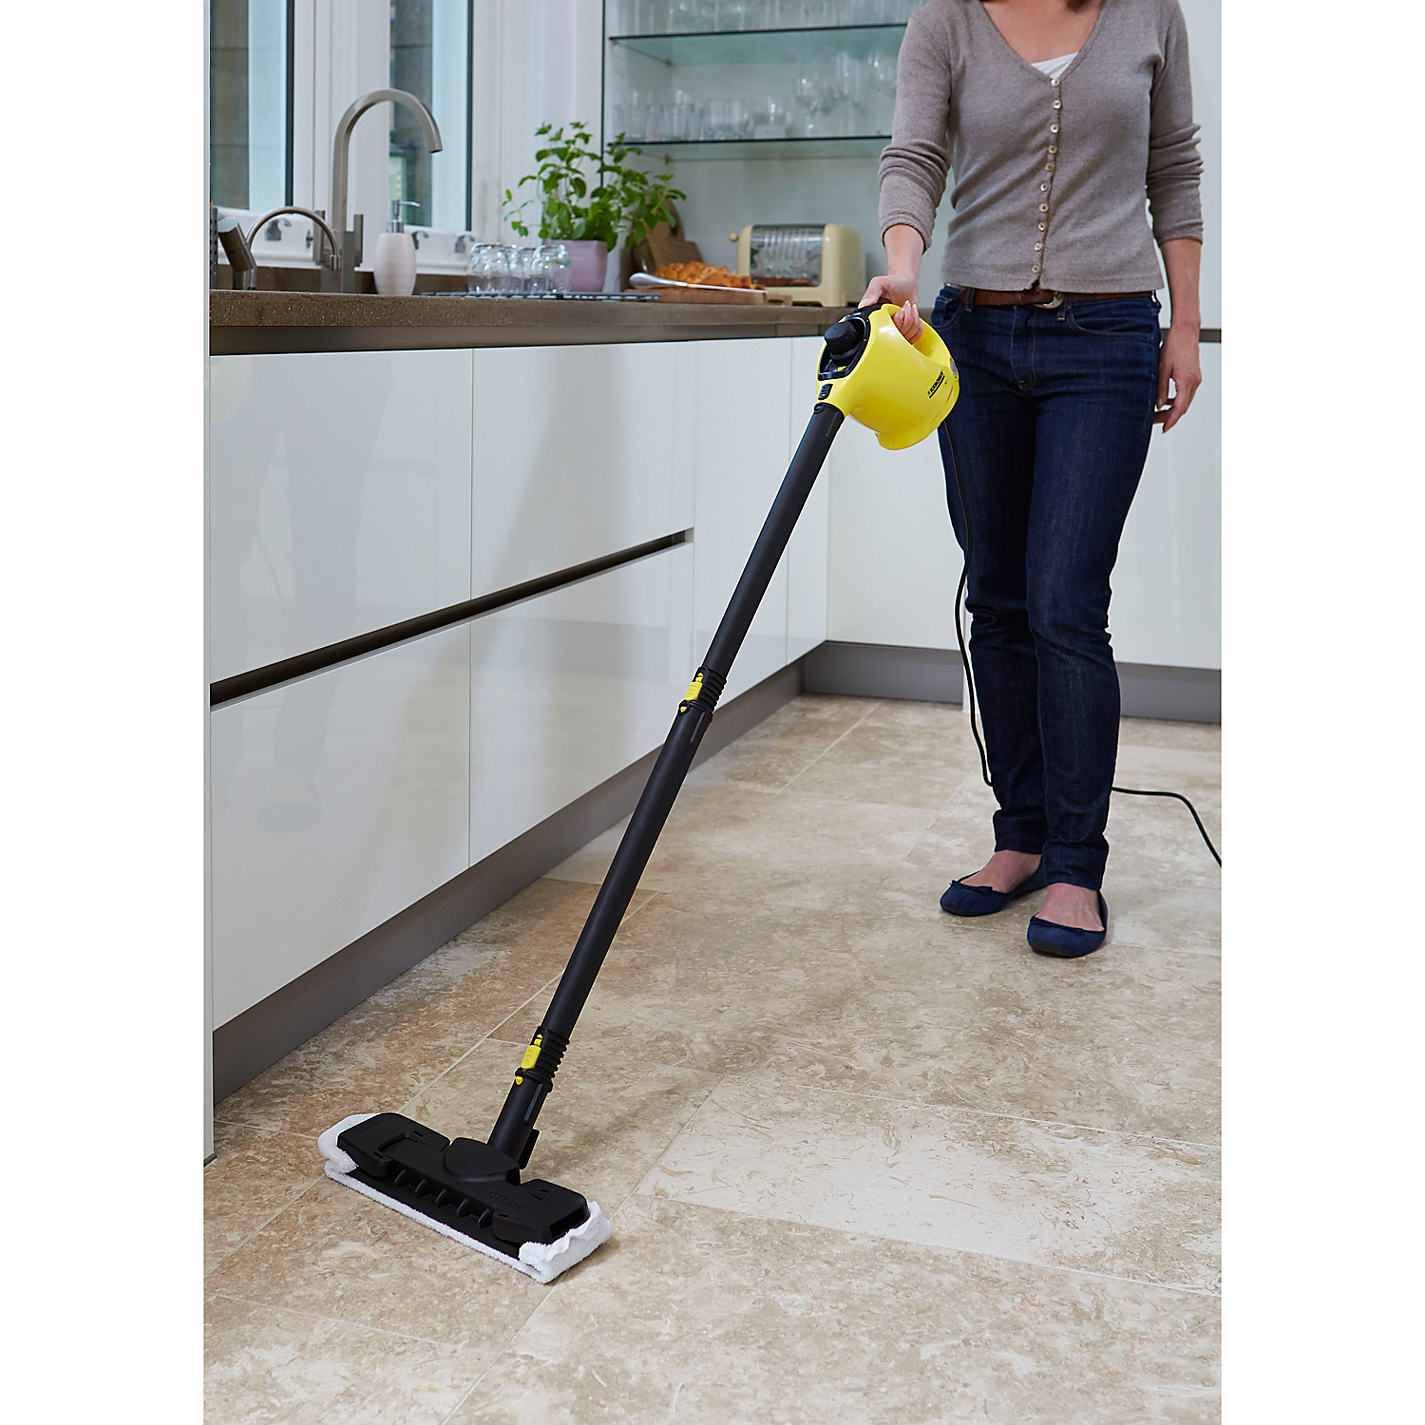 Karcher Karcher With Karcher Top Karcher Window Cleaners